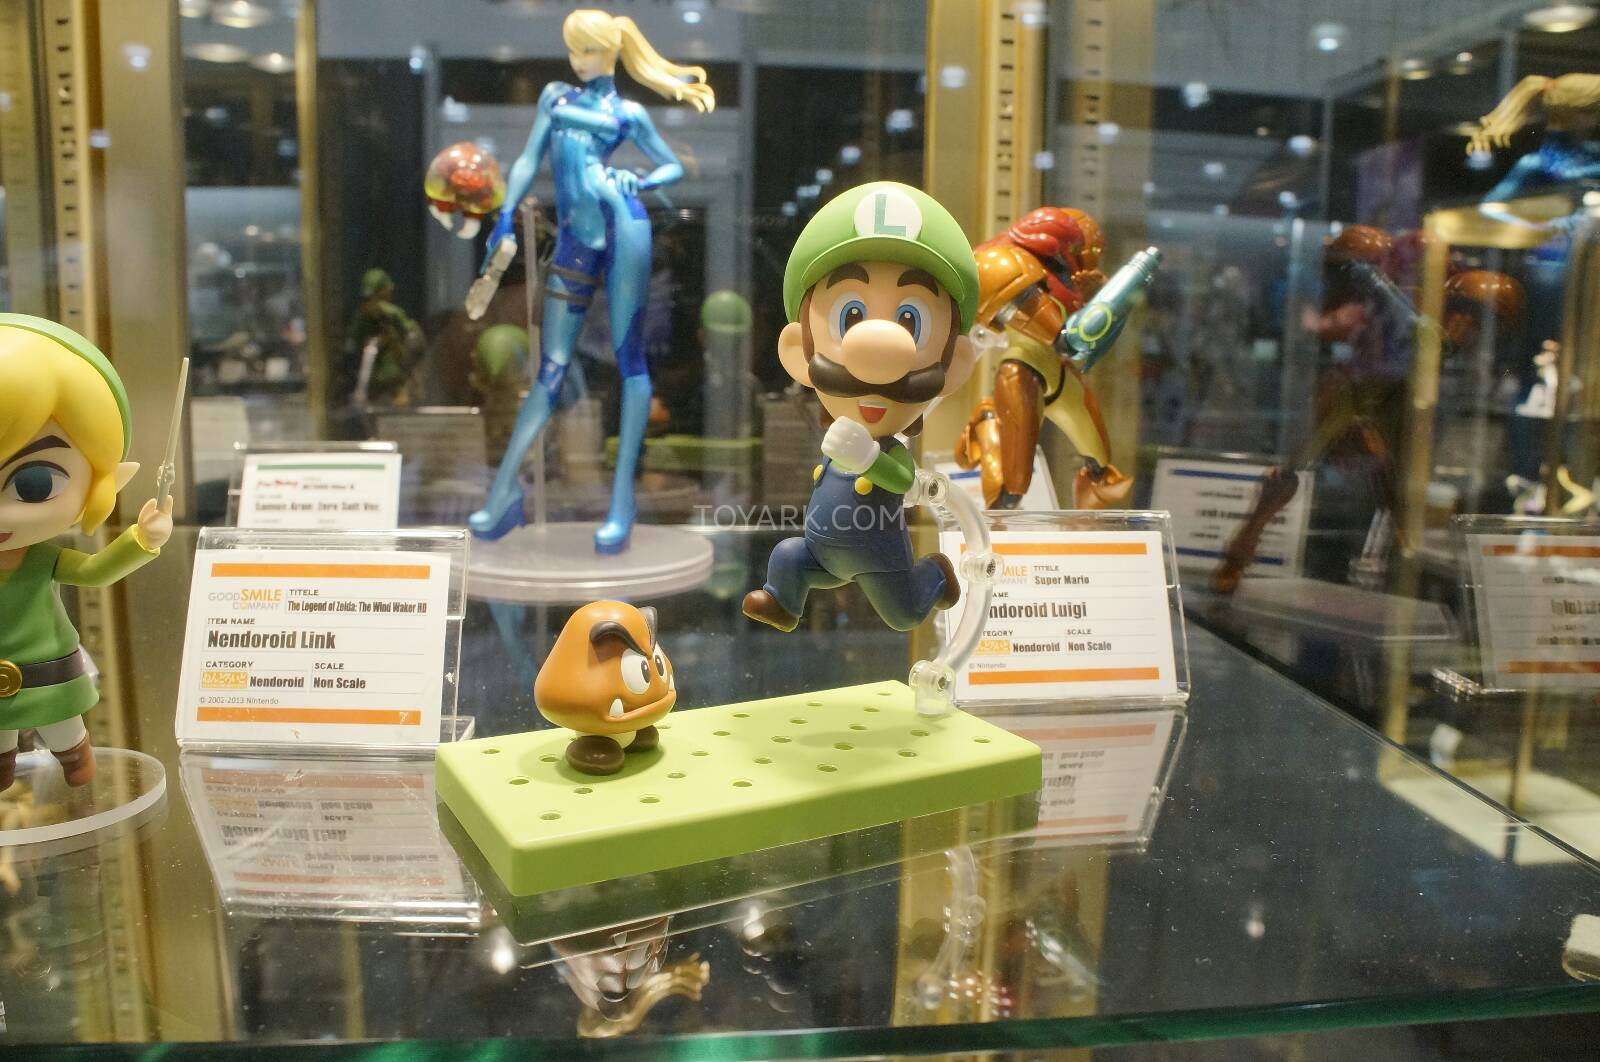 [EVENTO] Toy Fair 2014 - Good Smile Company / Max Factory / Phat Company / FREEing Toy-Fair-2014-Good-Smile-and-Max-Factory-Display-037